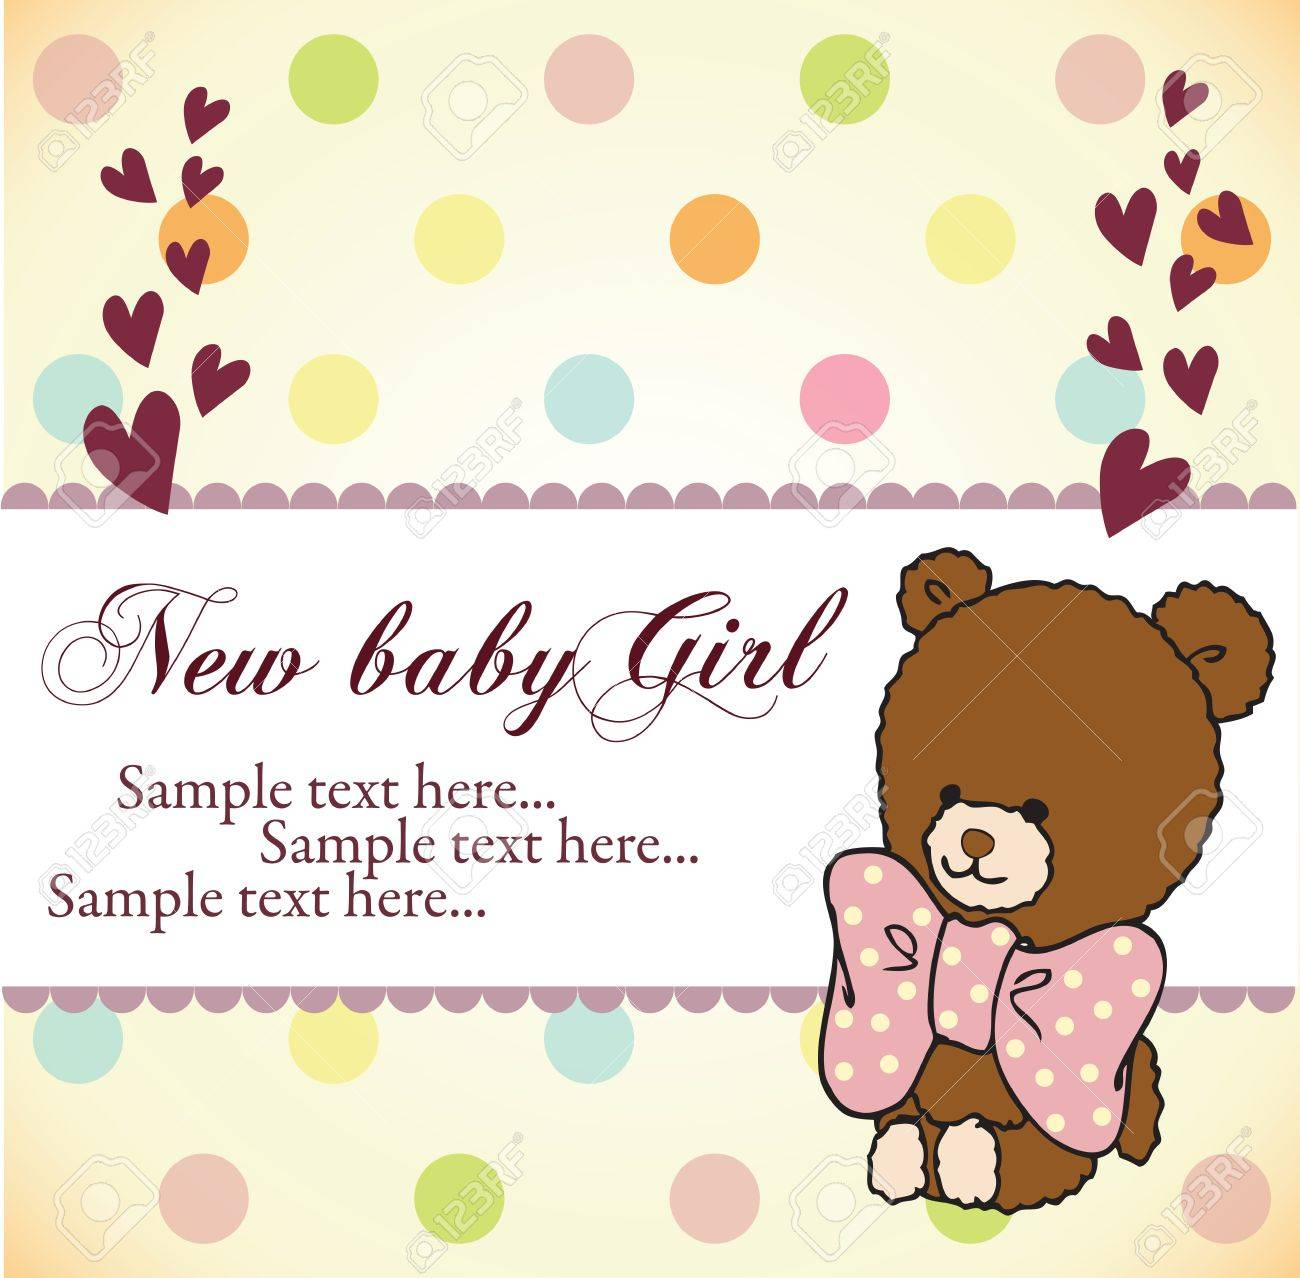 Baby Shower Invitation Card Royalty Free Cliparts, Vectors, And ...